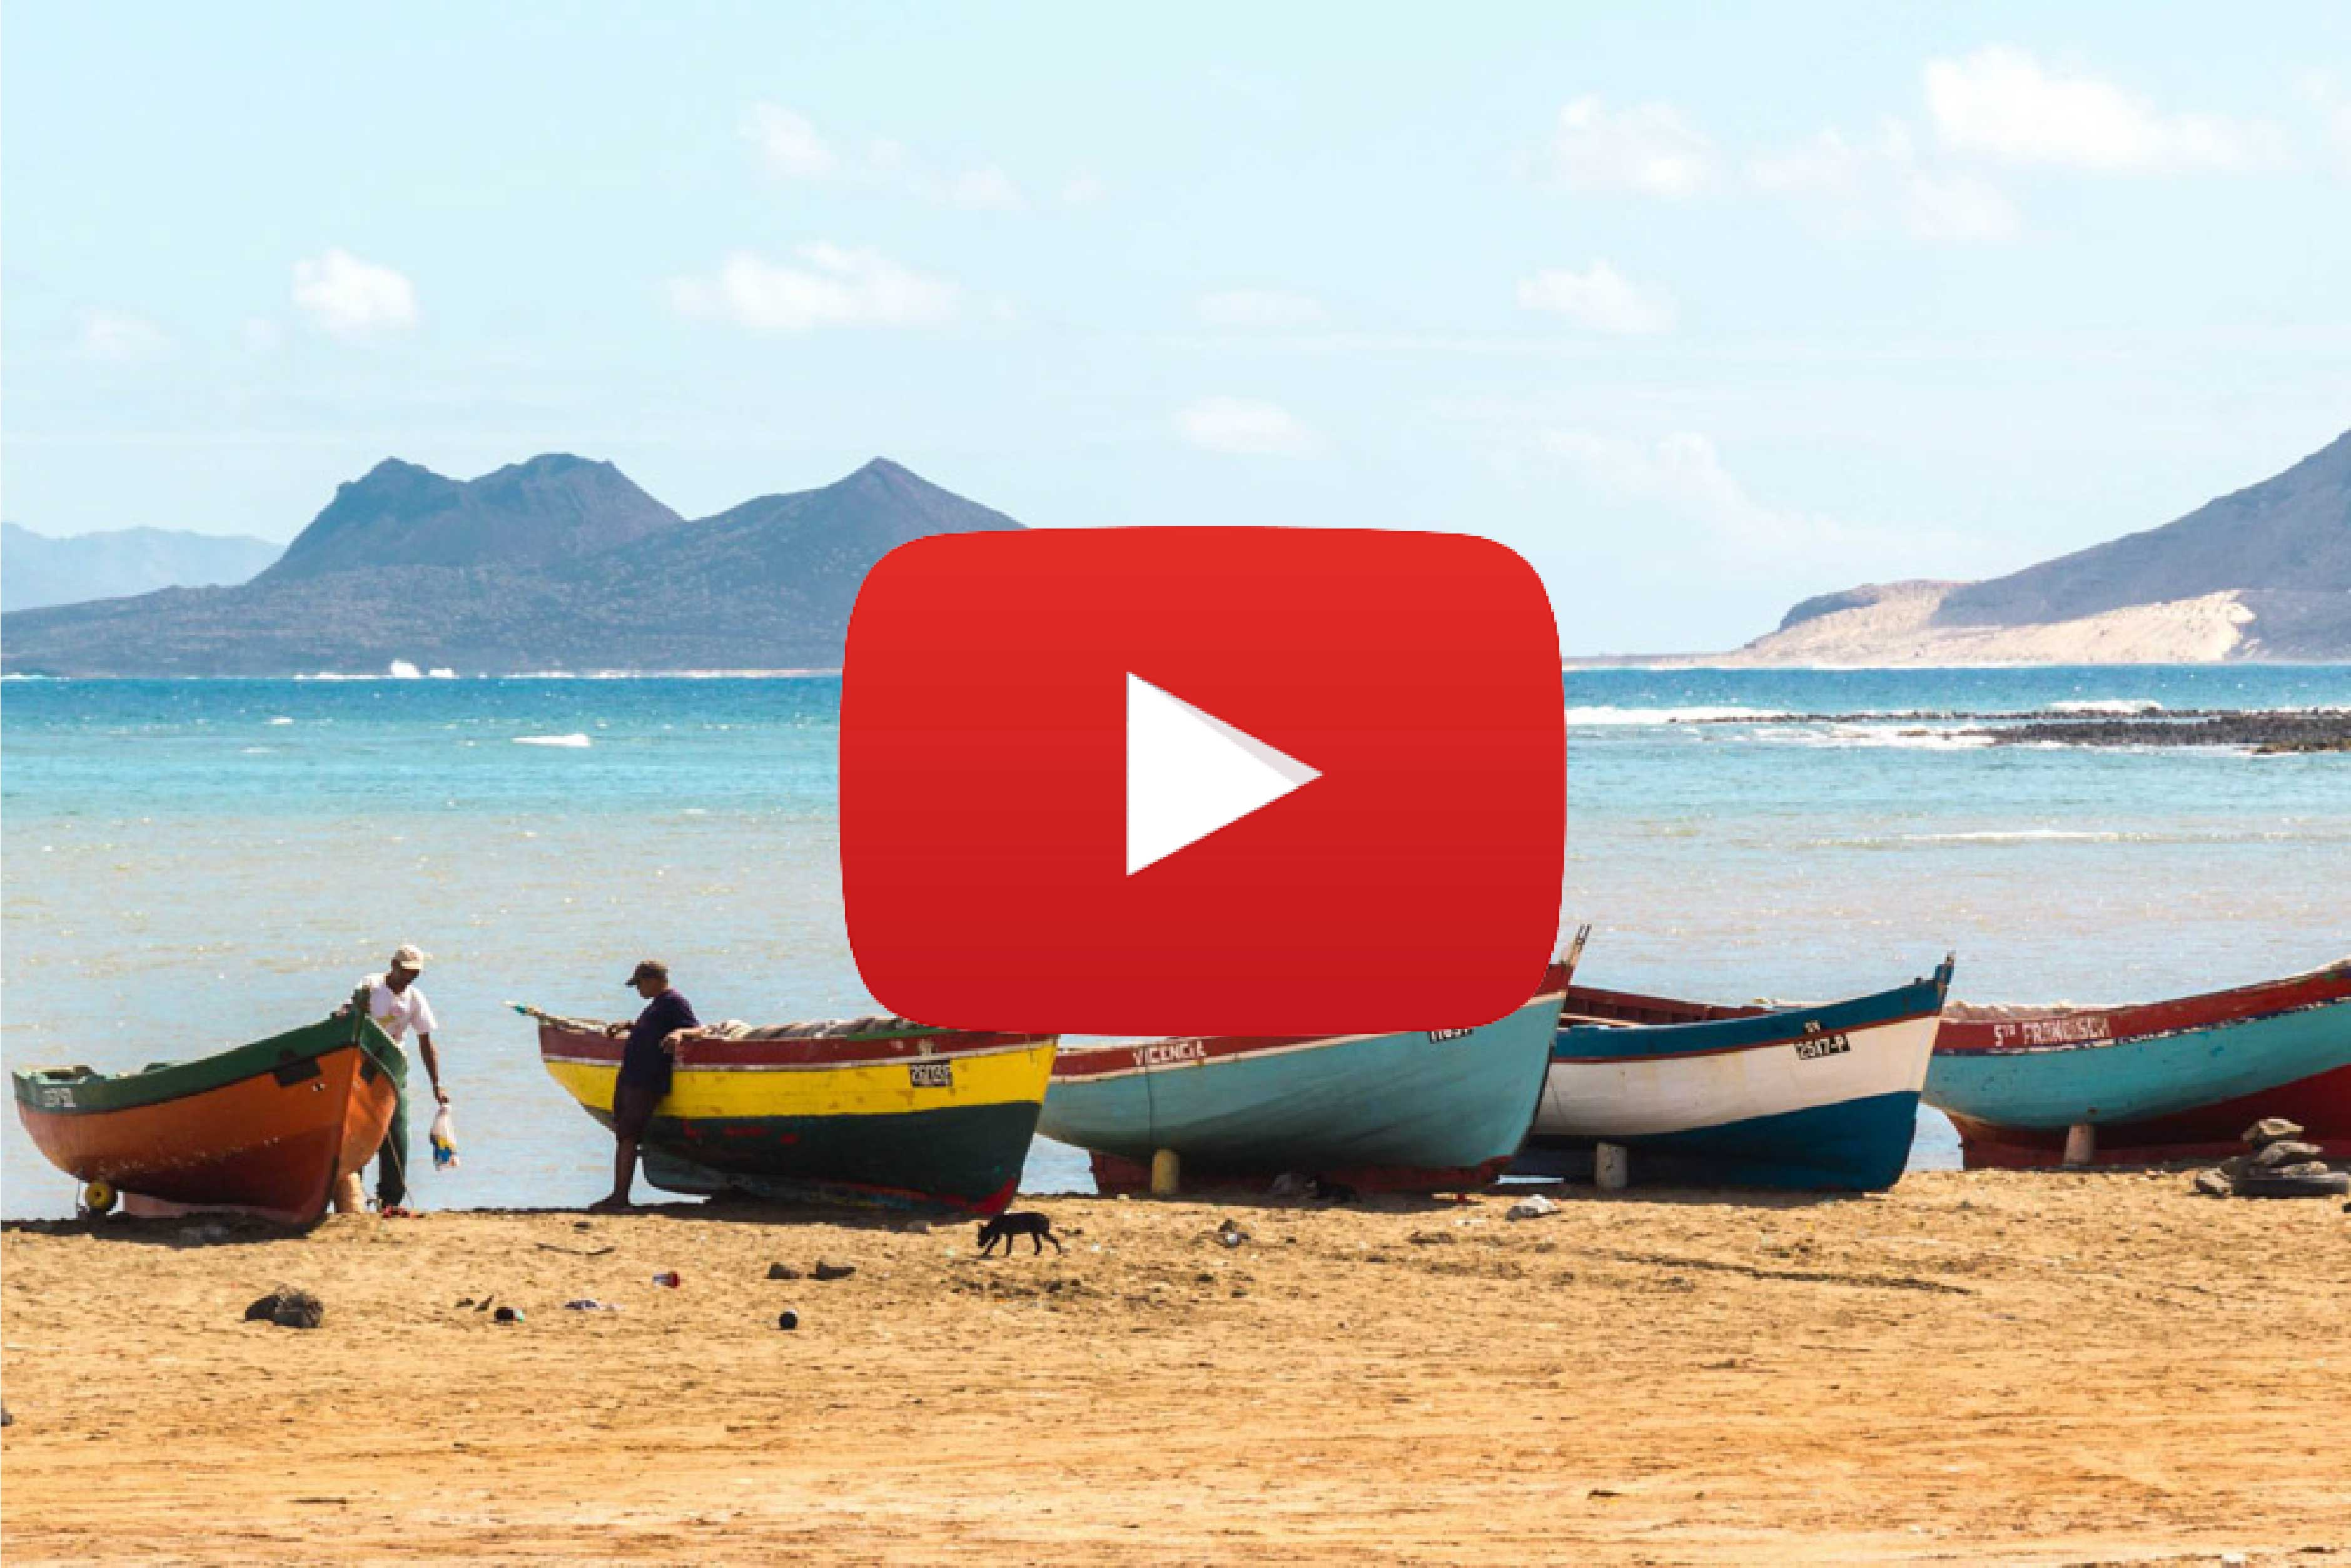 sailing oosterschelde cape verde island hopping sailing cruise